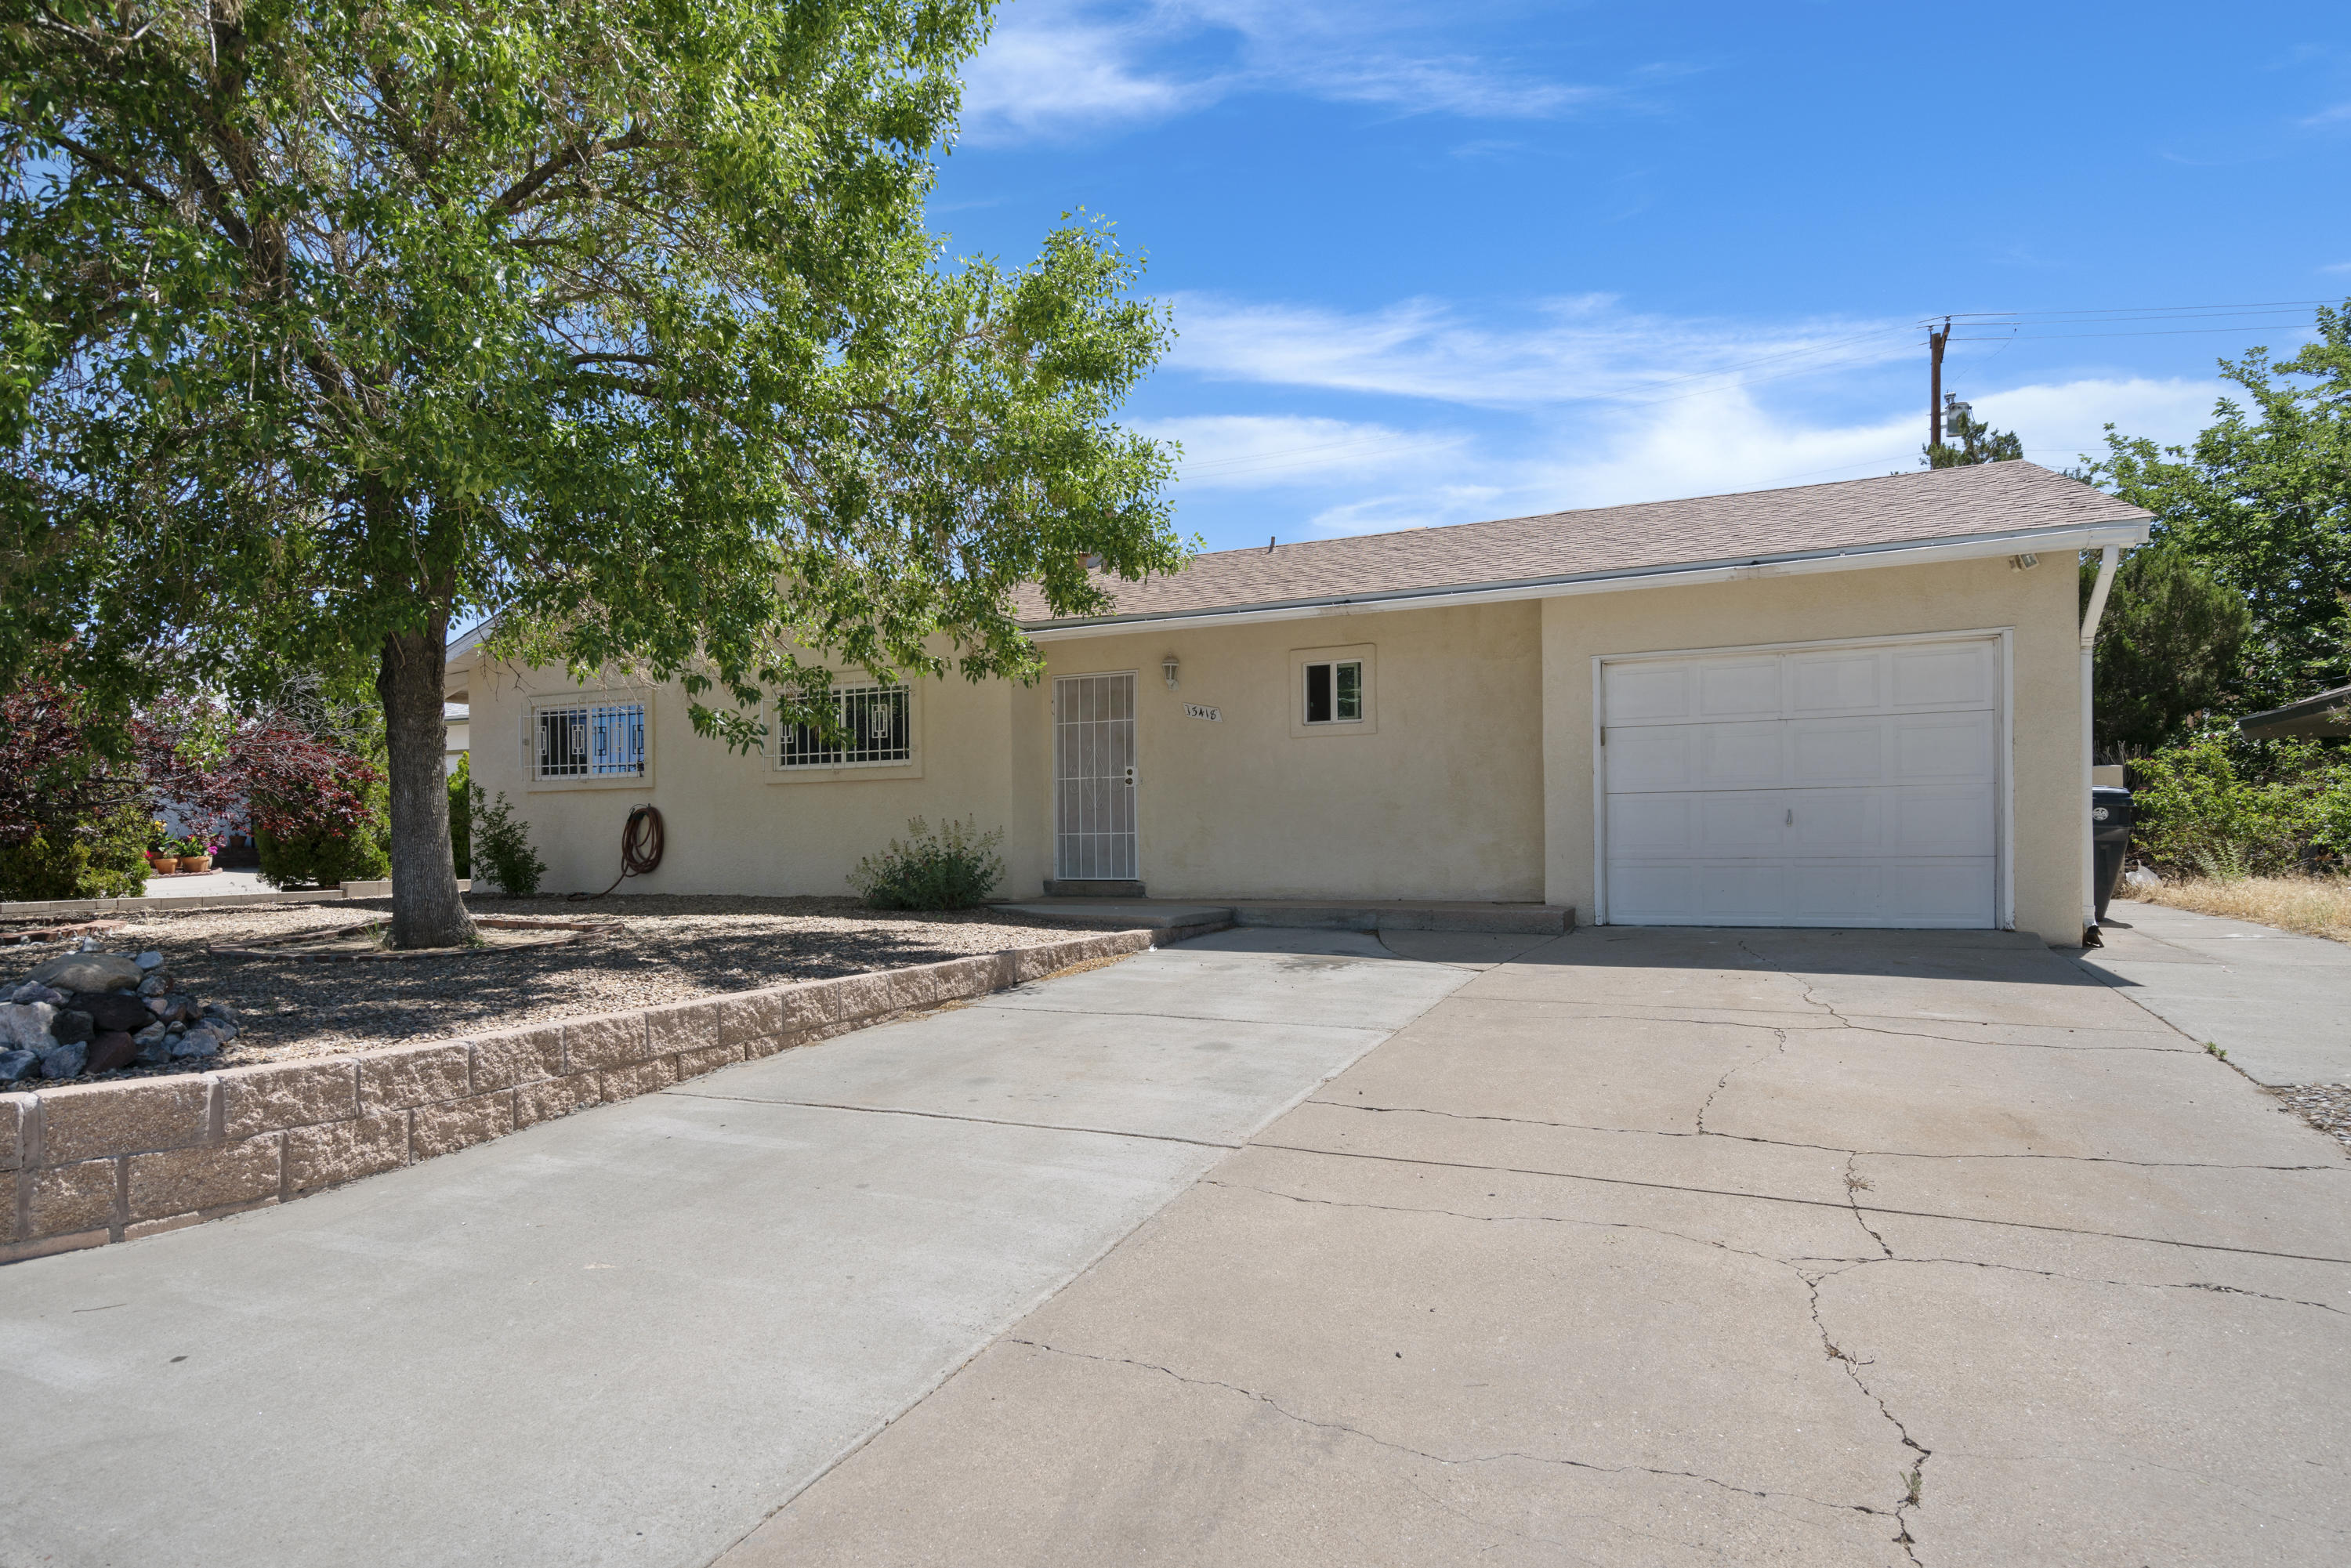 Walk in and enjoy the open concept floorplan with a completely updated kitchen! This single story NE heights home offers 3 bedrooms, 1.75 baths and a 1 car garage. Step outside to a large covered patio and green lawn, perfect for all of your entertaining needs! Recent updates include: roof and master cool 2018, stucco and windows 2014, granite counter tops, new cabinets, tile, French door, water heater and landscaped backyard! This house will not last long!